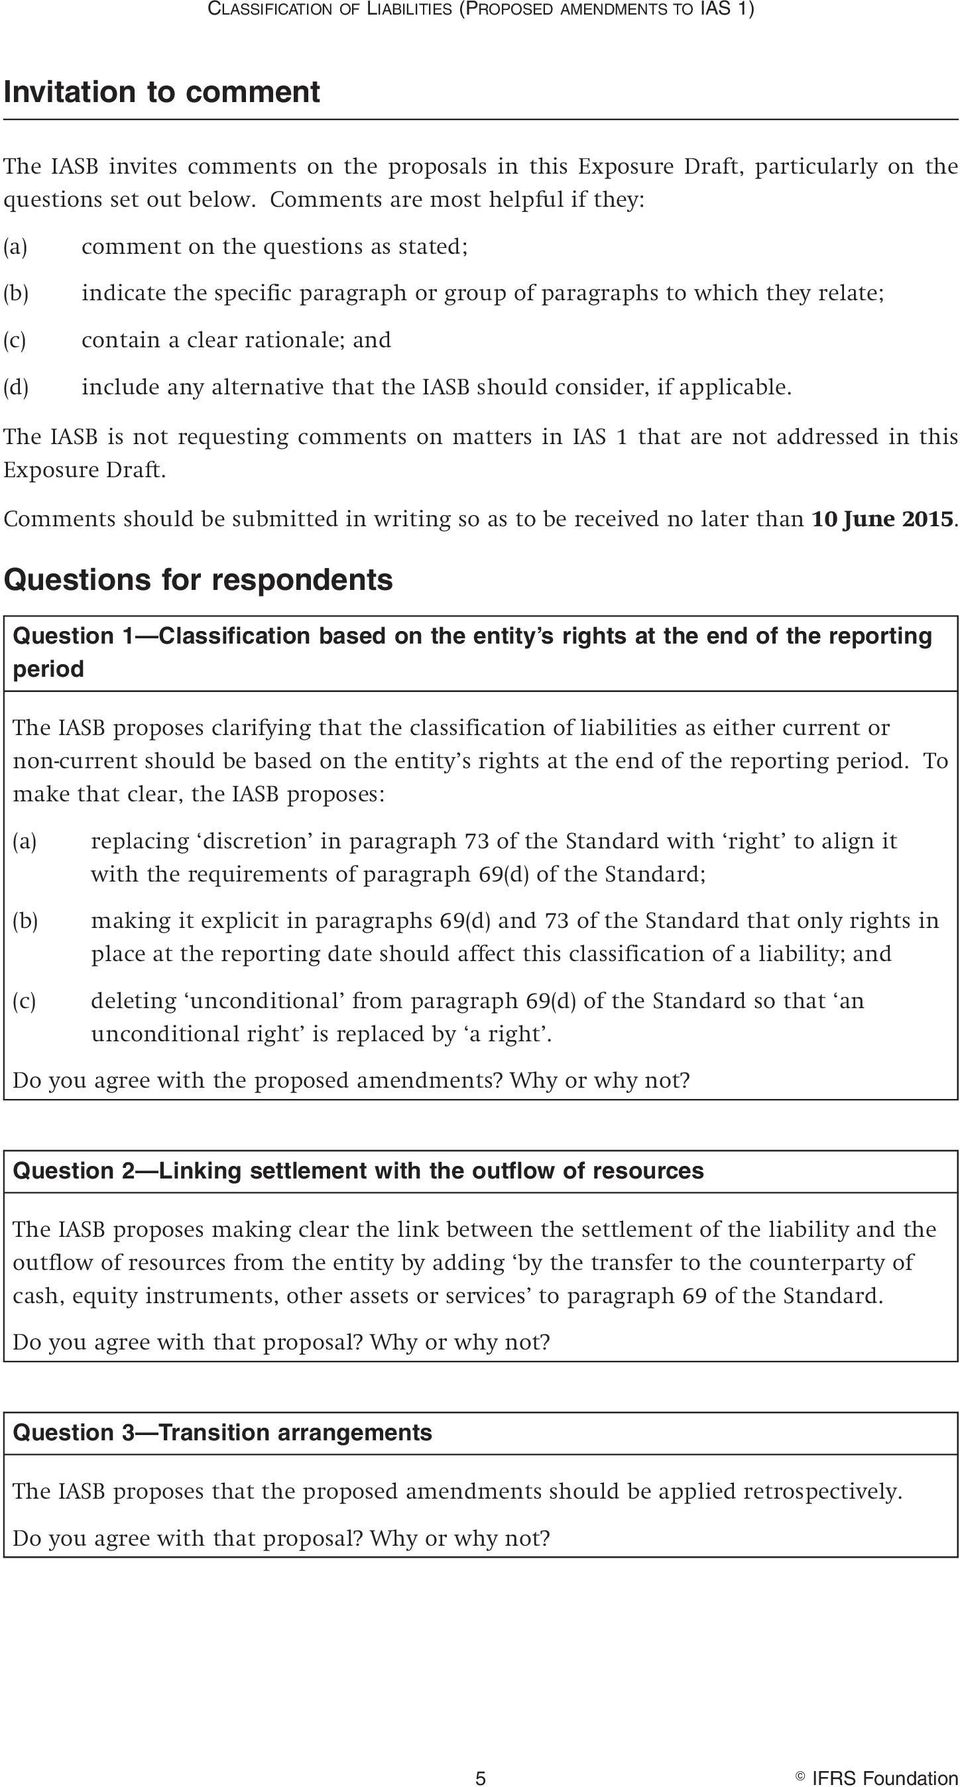 include any alternative that the IASB should consider, if applicable. The IASB is not requesting comments on matters in IAS 1 that are not addressed in this Exposure Draft.